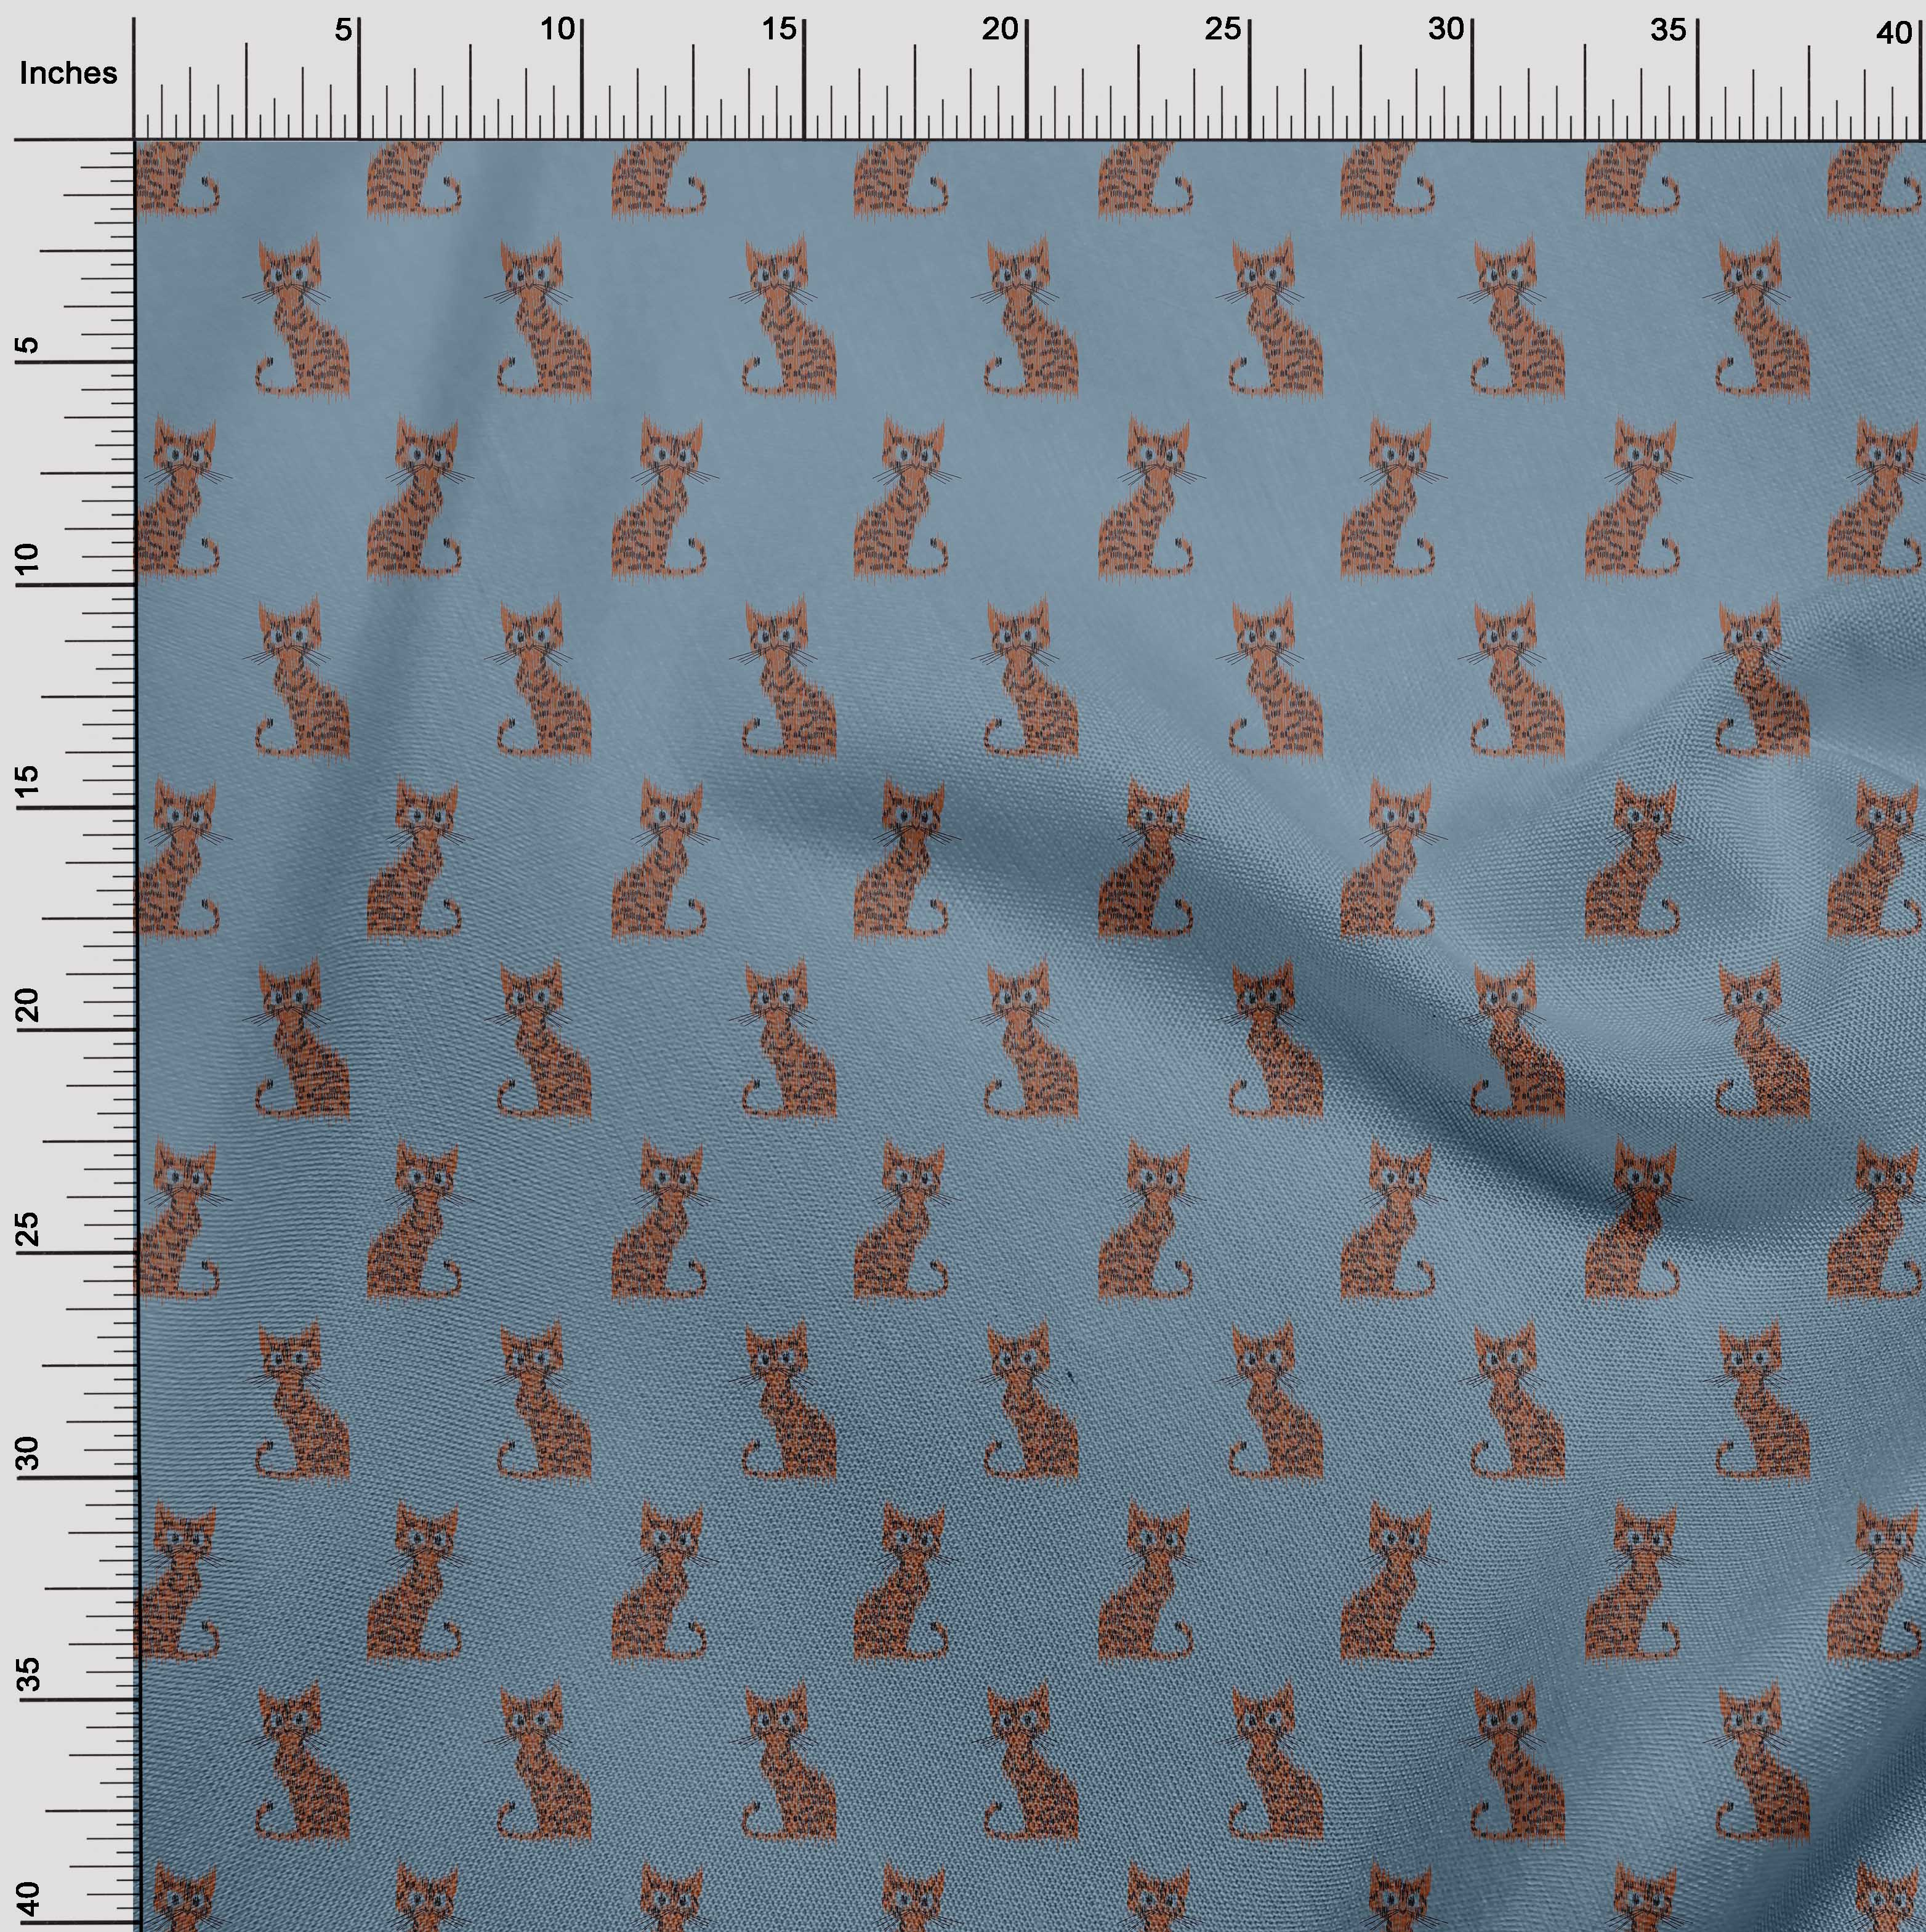 oneOone-Katze-Ikat-Printed-Craft-Fabric-By-The-Meter-IK-1203A-1 Indexbild 25